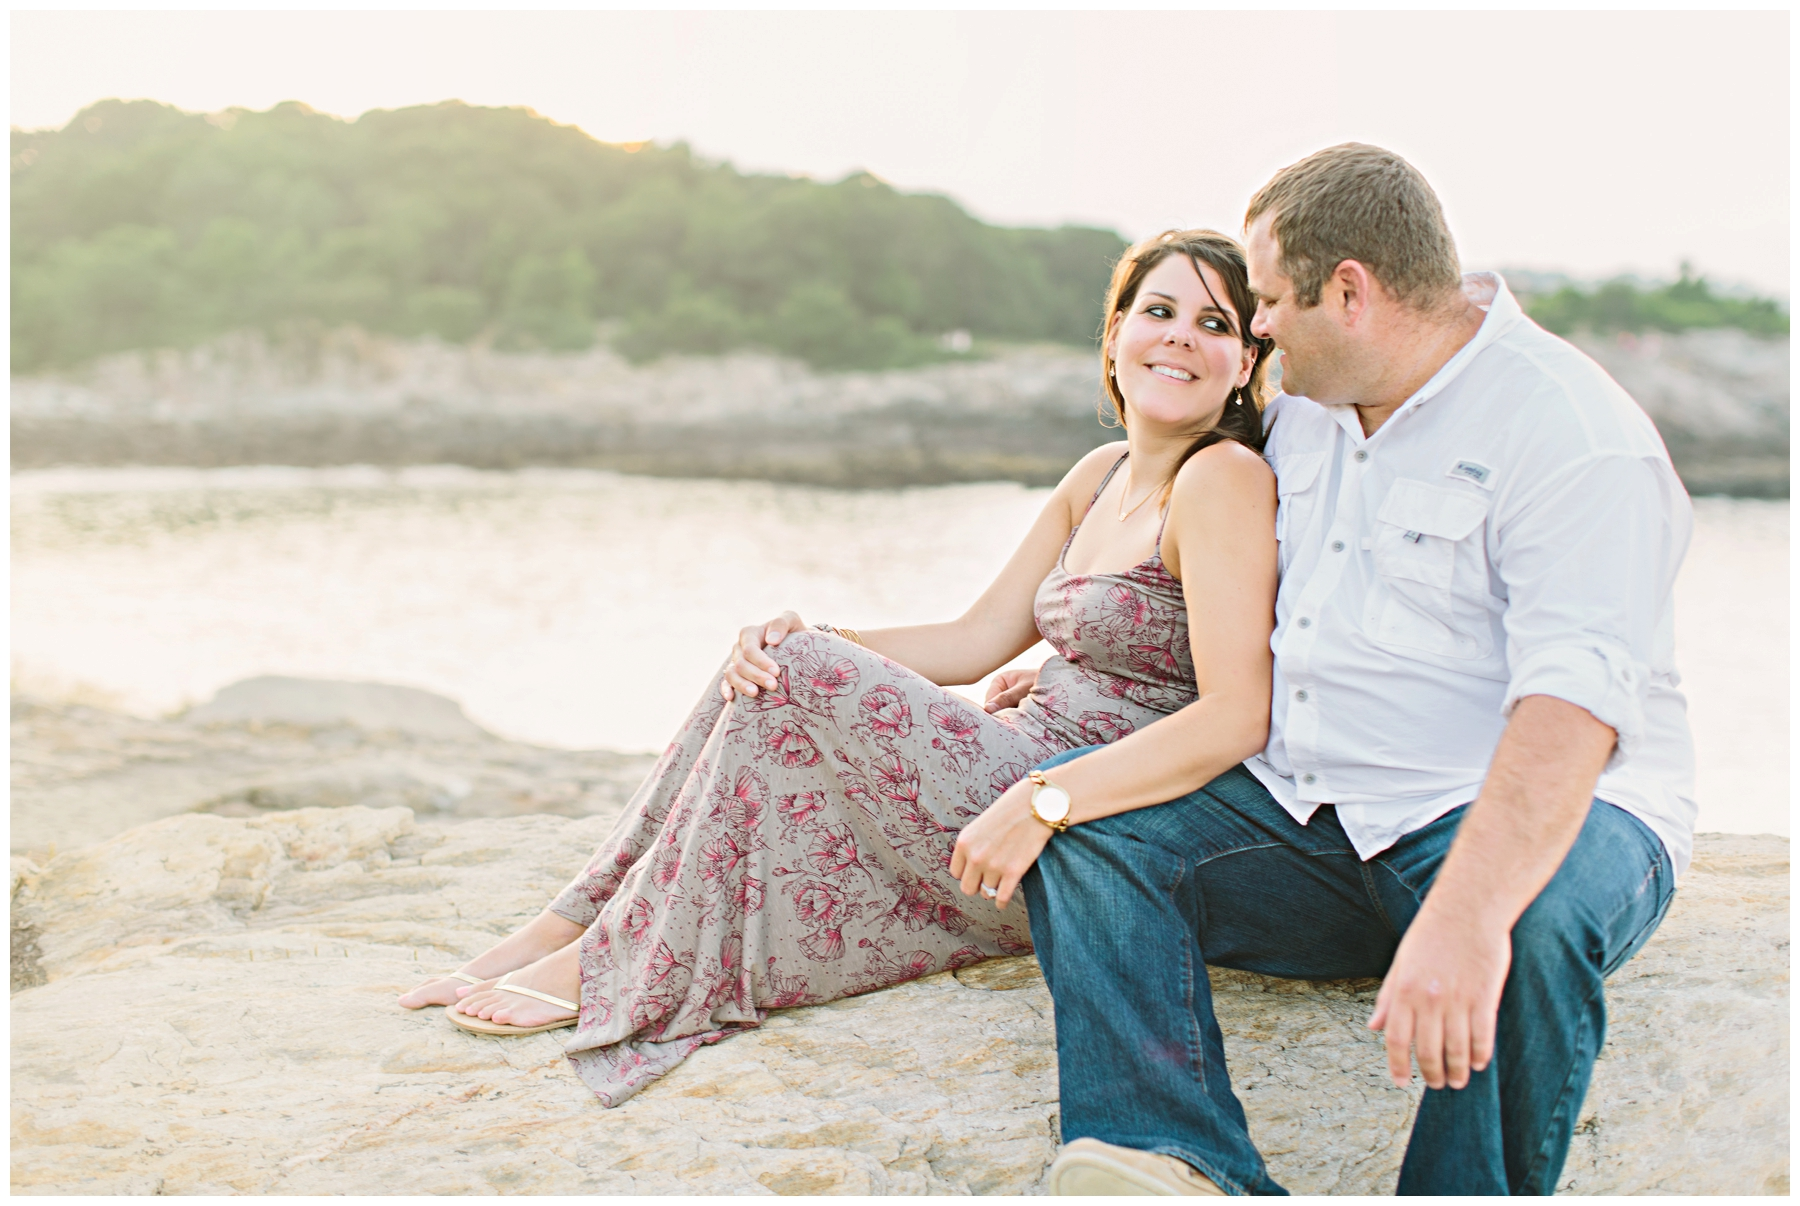 Maine_Photographer_Engagements_FortWilliams_PortlandHeadLight_lighthouse_coastal_seaside-023